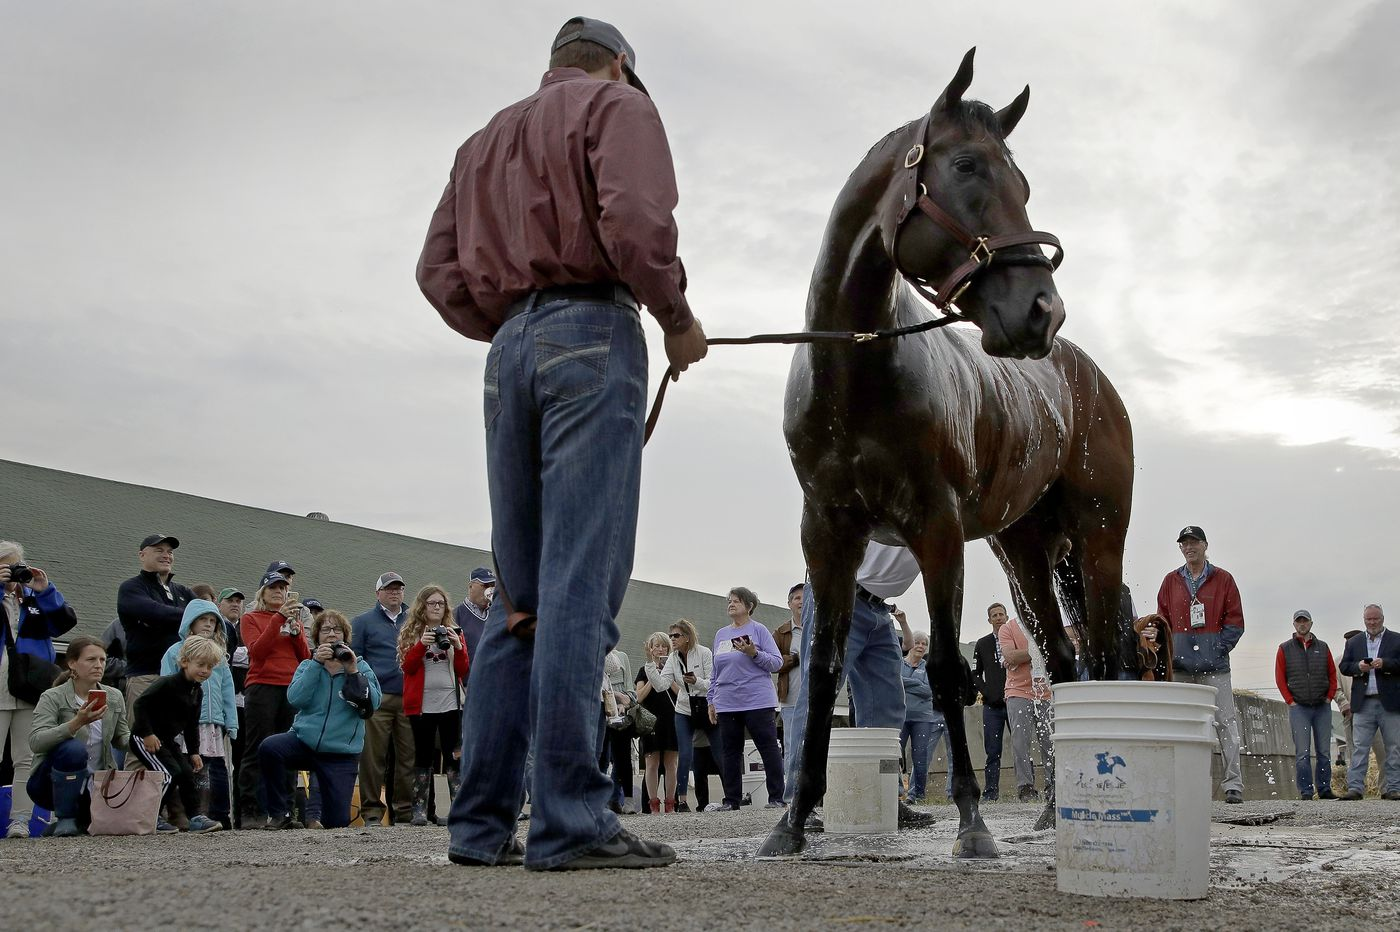 Kentucky Derby: Omaha Beach will not run at Preakness or Belmont Stakes